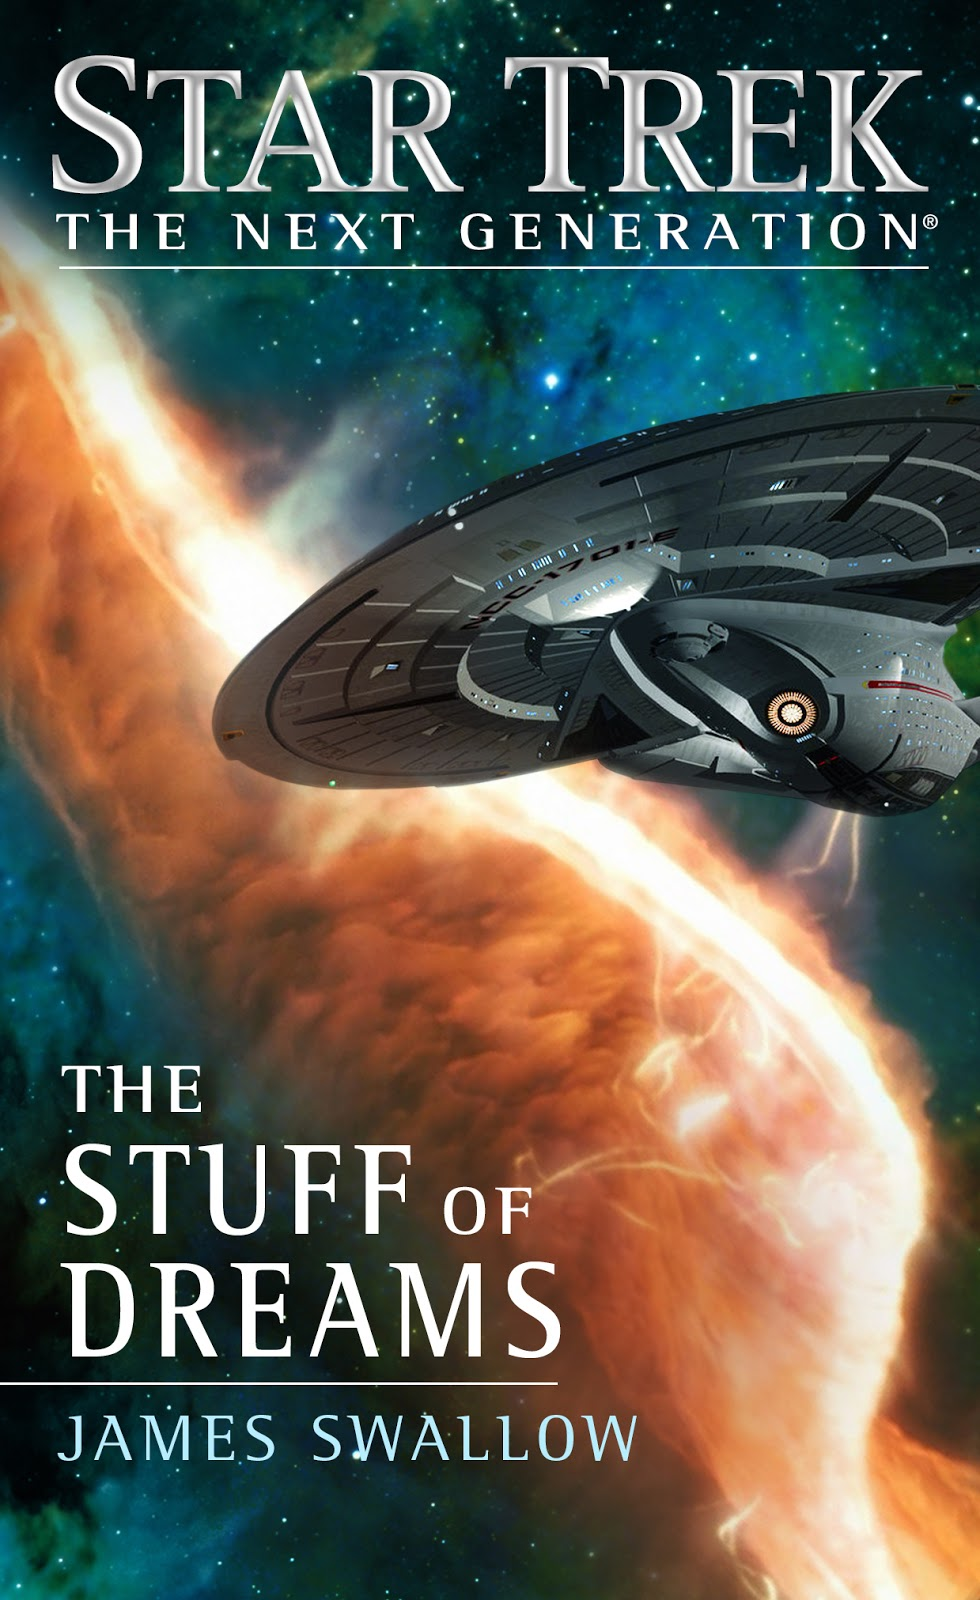 Star Trek The Next Generation The Stuff of Dreams James Swallow.jpg